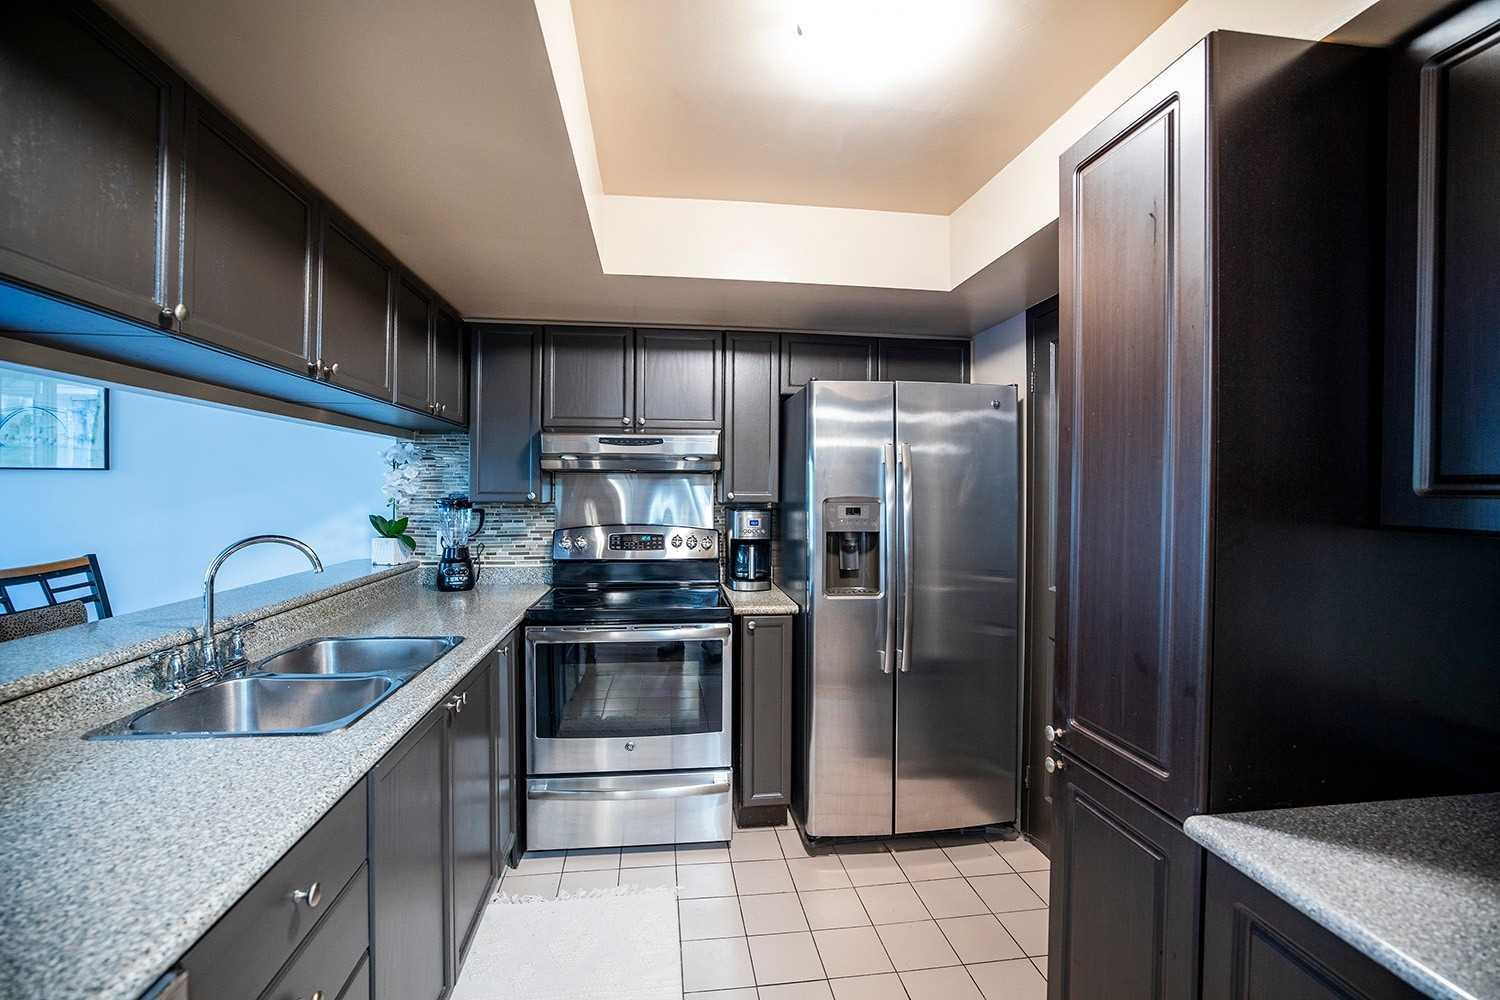 Image 17 of 20 showing inside of 2 Bedroom Condo Apt 2-Storey for Sale at 25 Cumberland Lane Unit# 112, Ajax L1S7K1